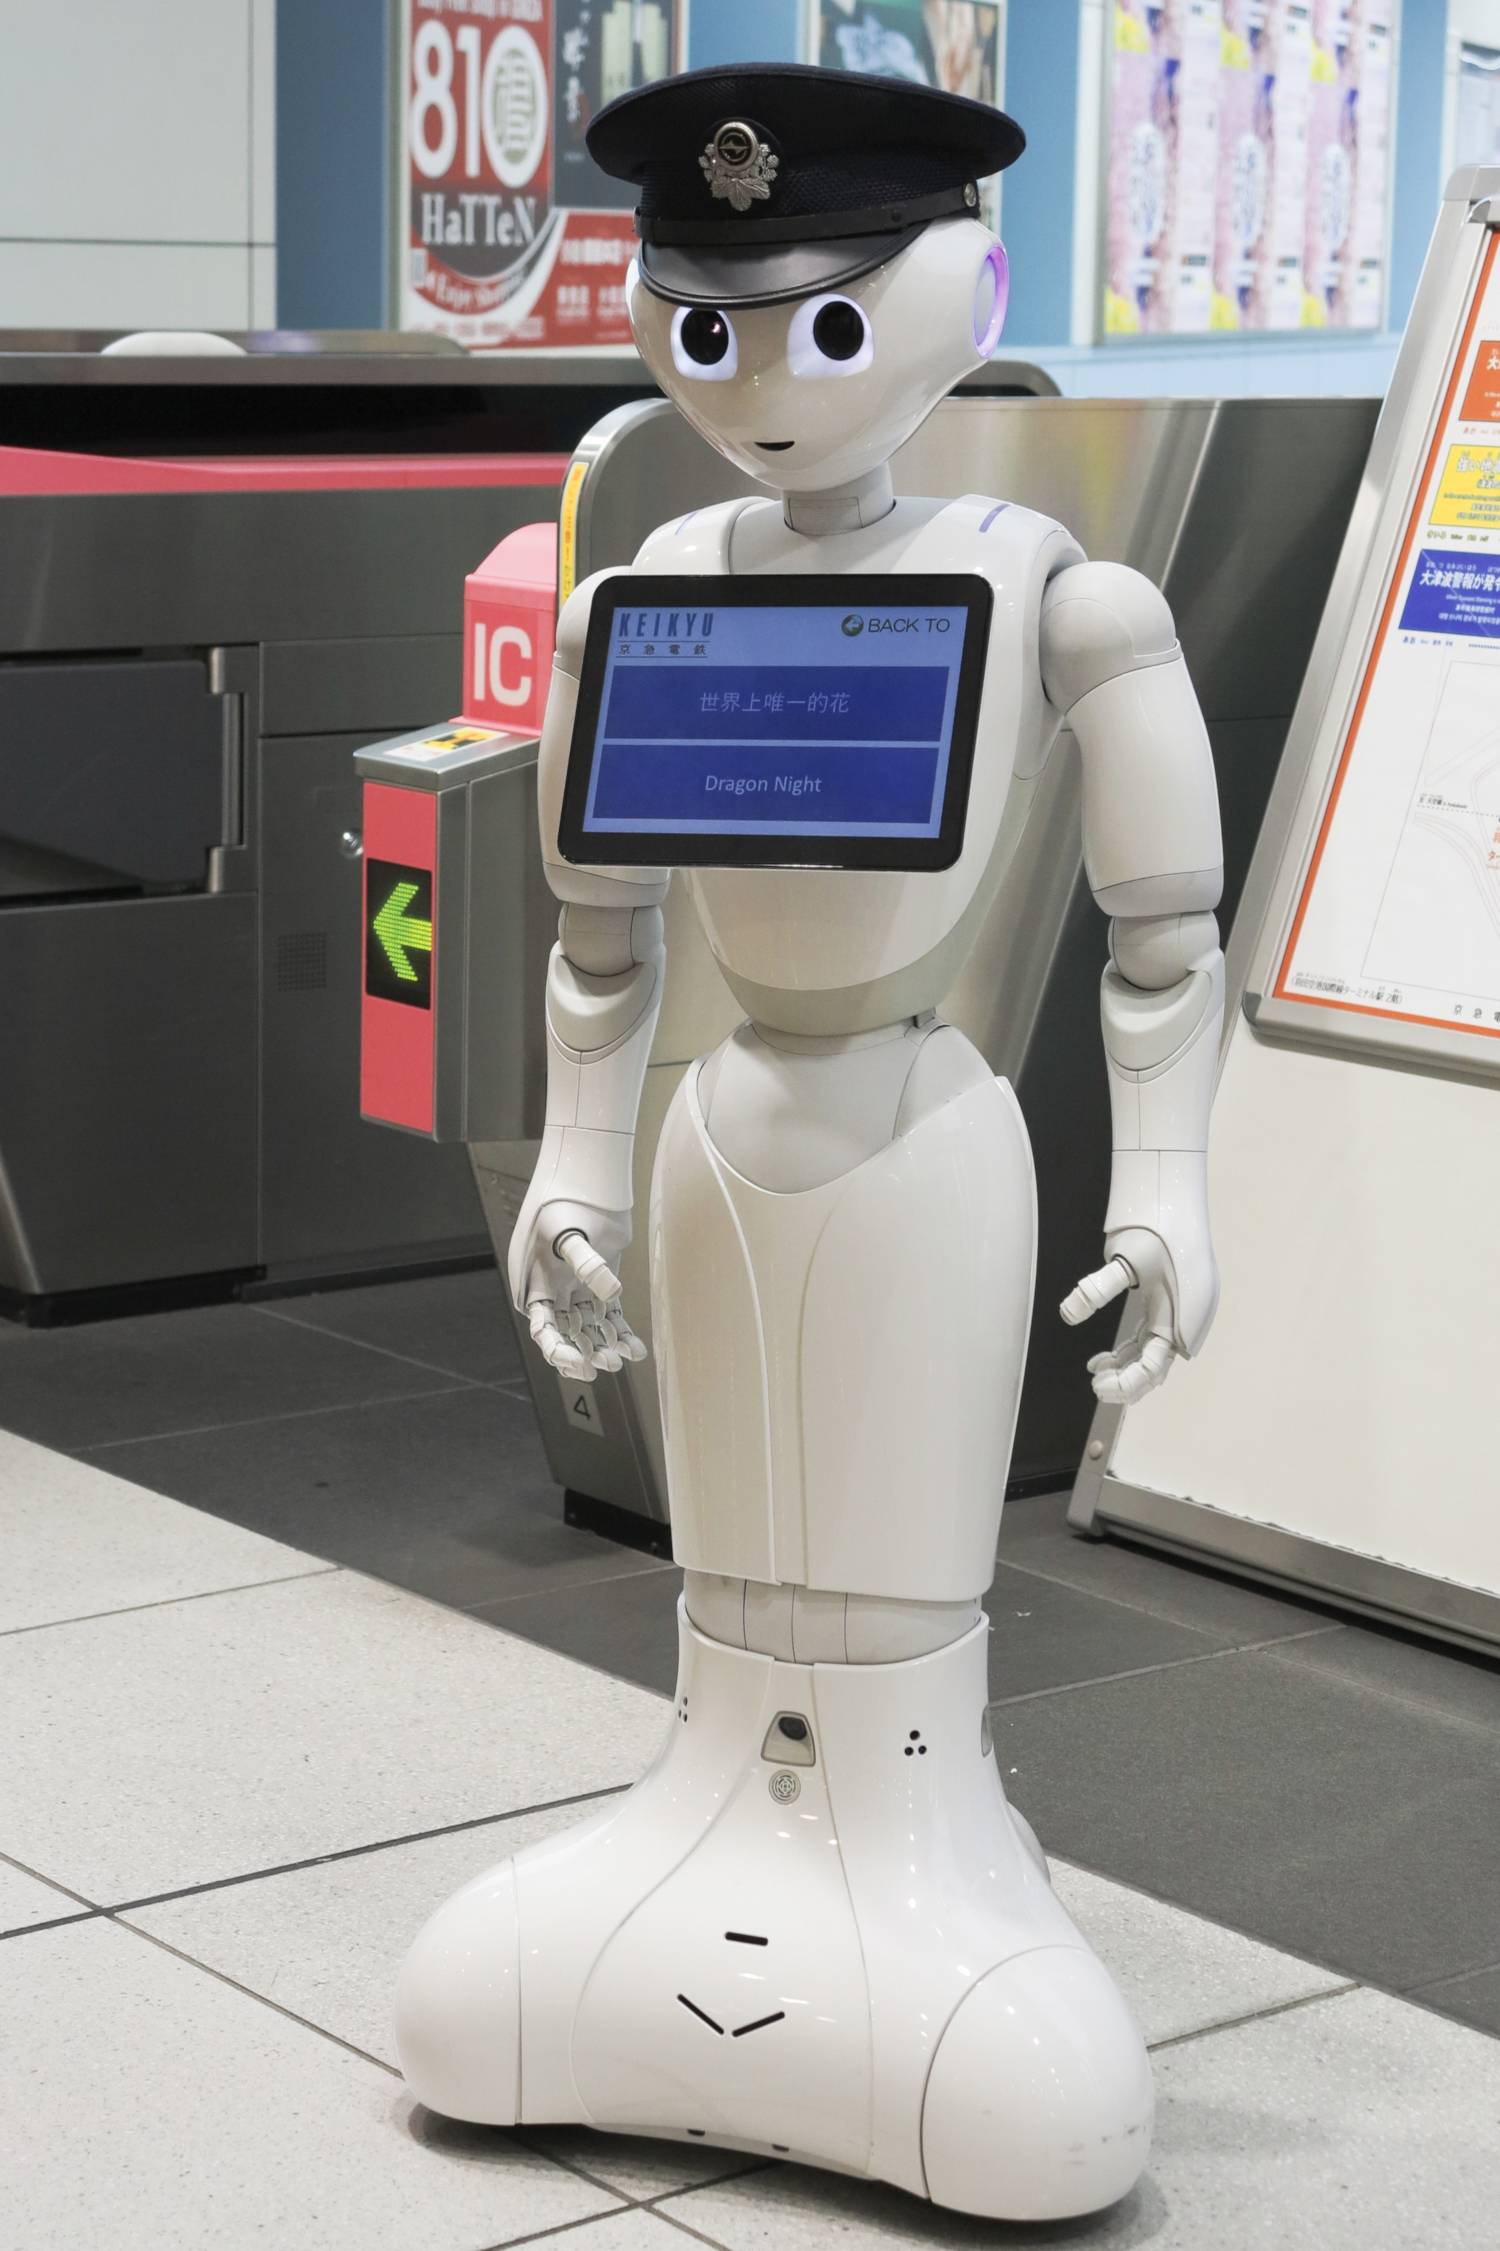 AI Station Staff (credits: MIKI Yoshihito / Flickr Creative Commons Attribution 2.0 Generic (CC BY 2.0))